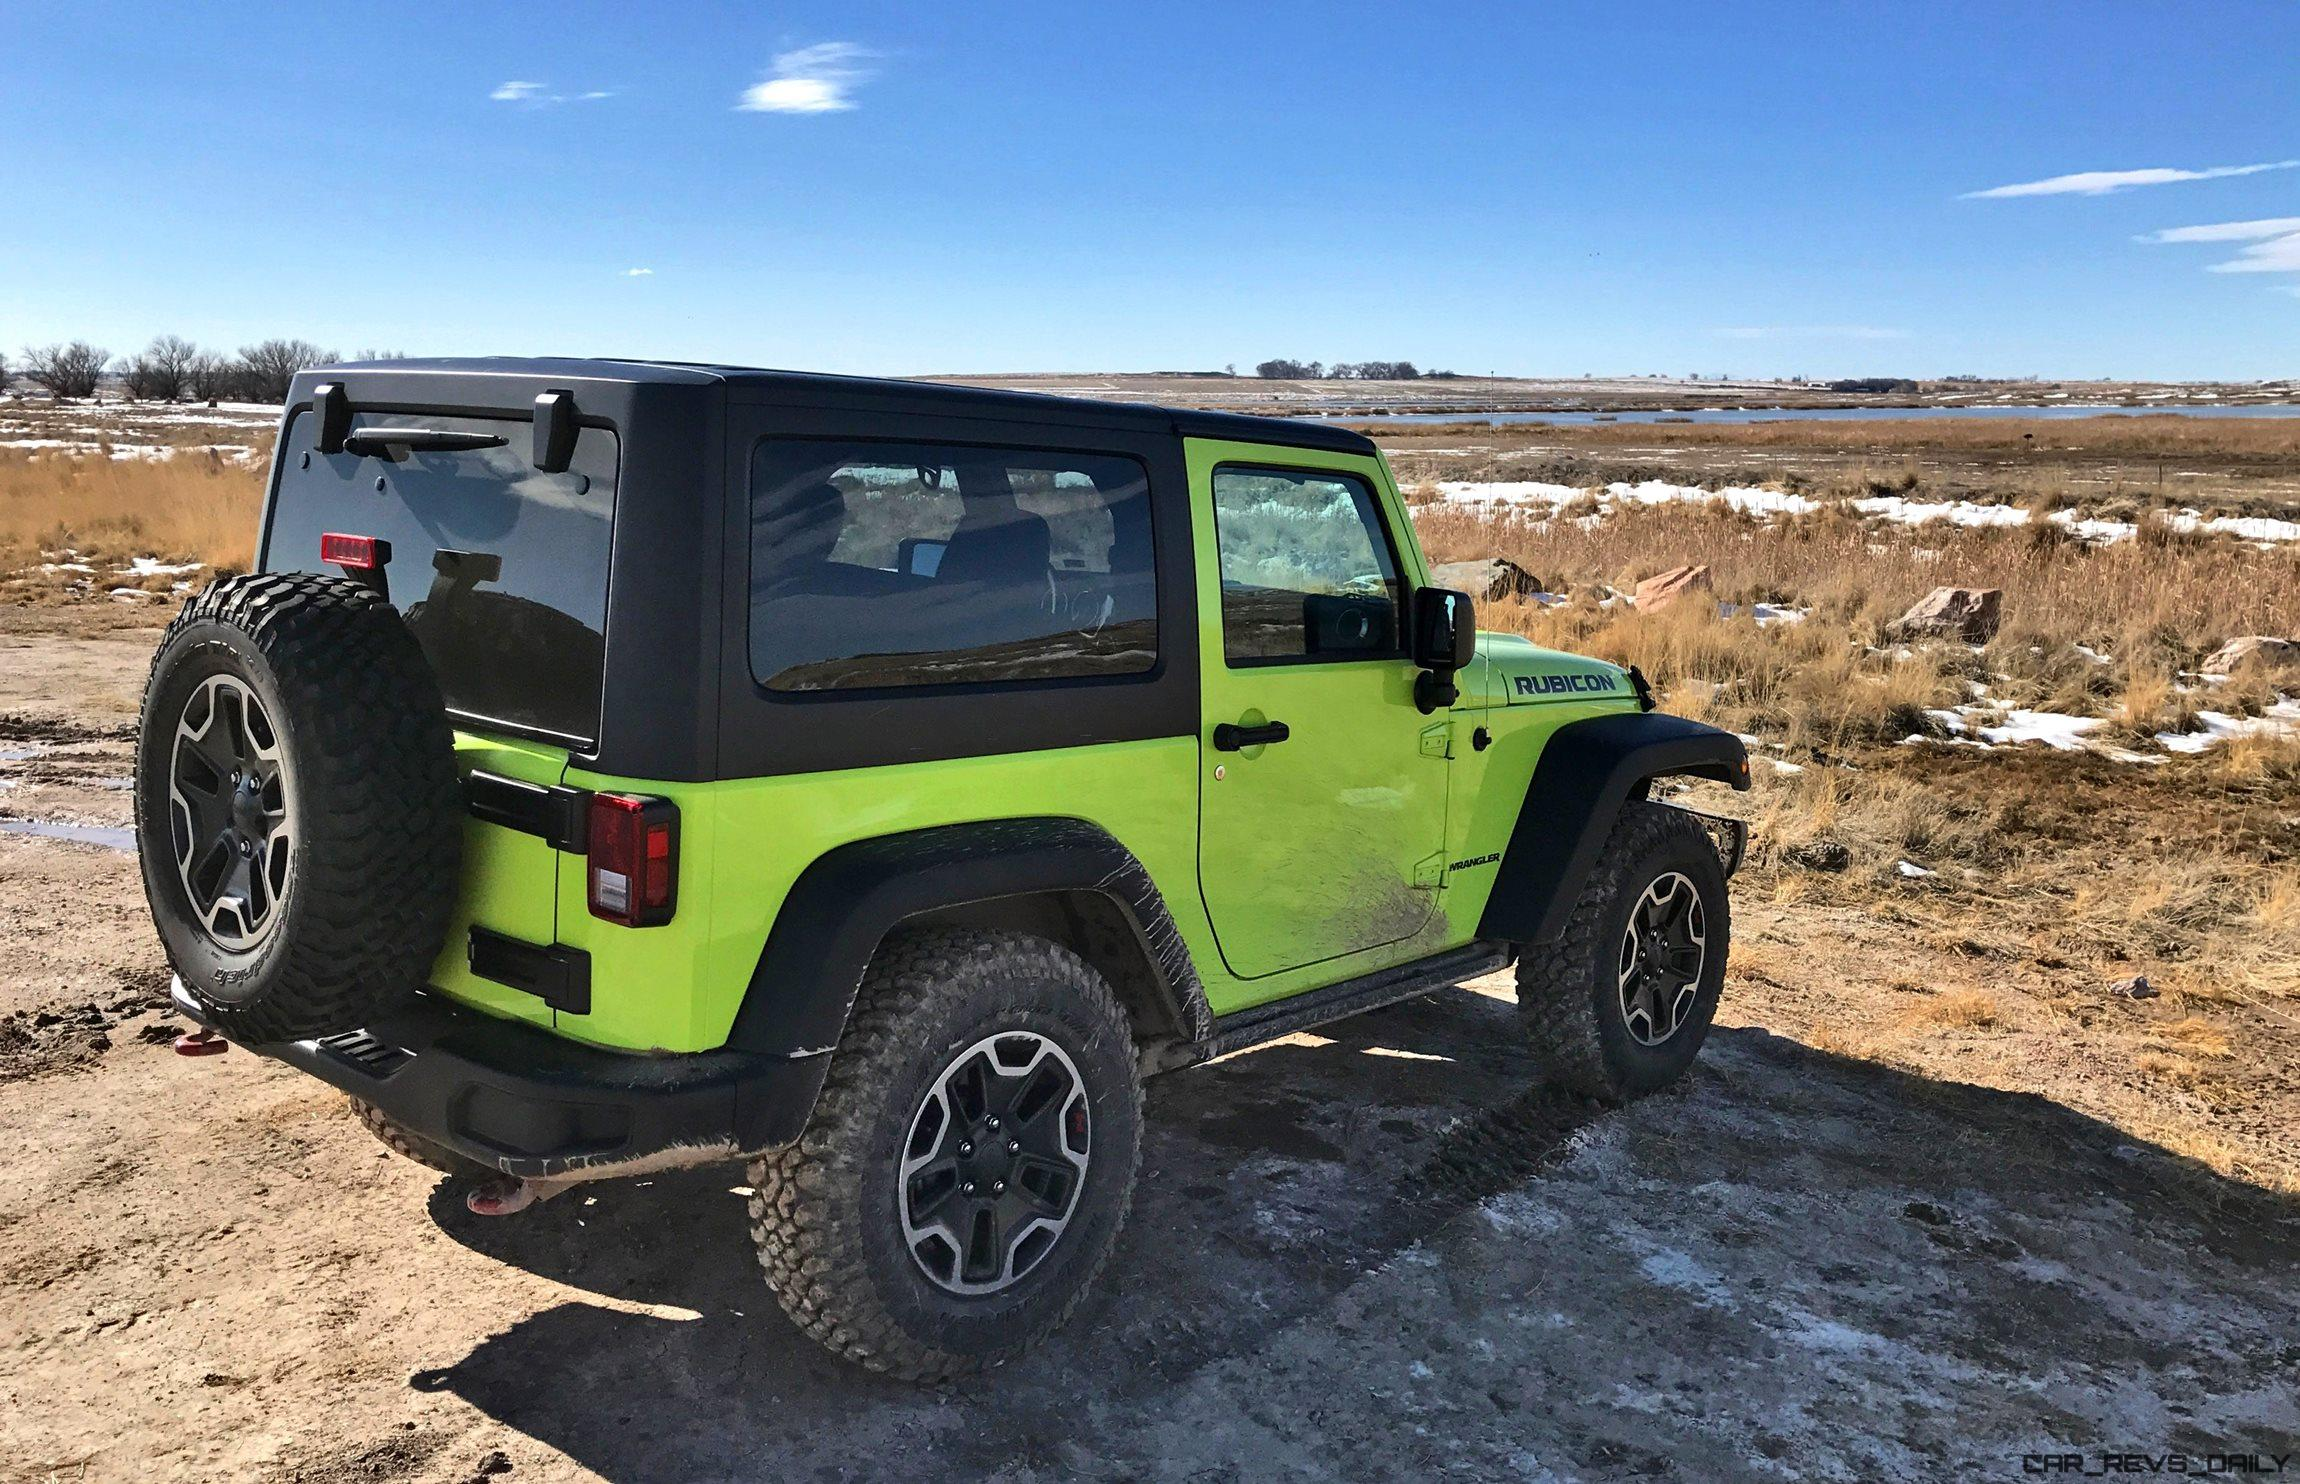 2017 jeep wrangler rubicon hard rock review by tim esterdahl. Black Bedroom Furniture Sets. Home Design Ideas